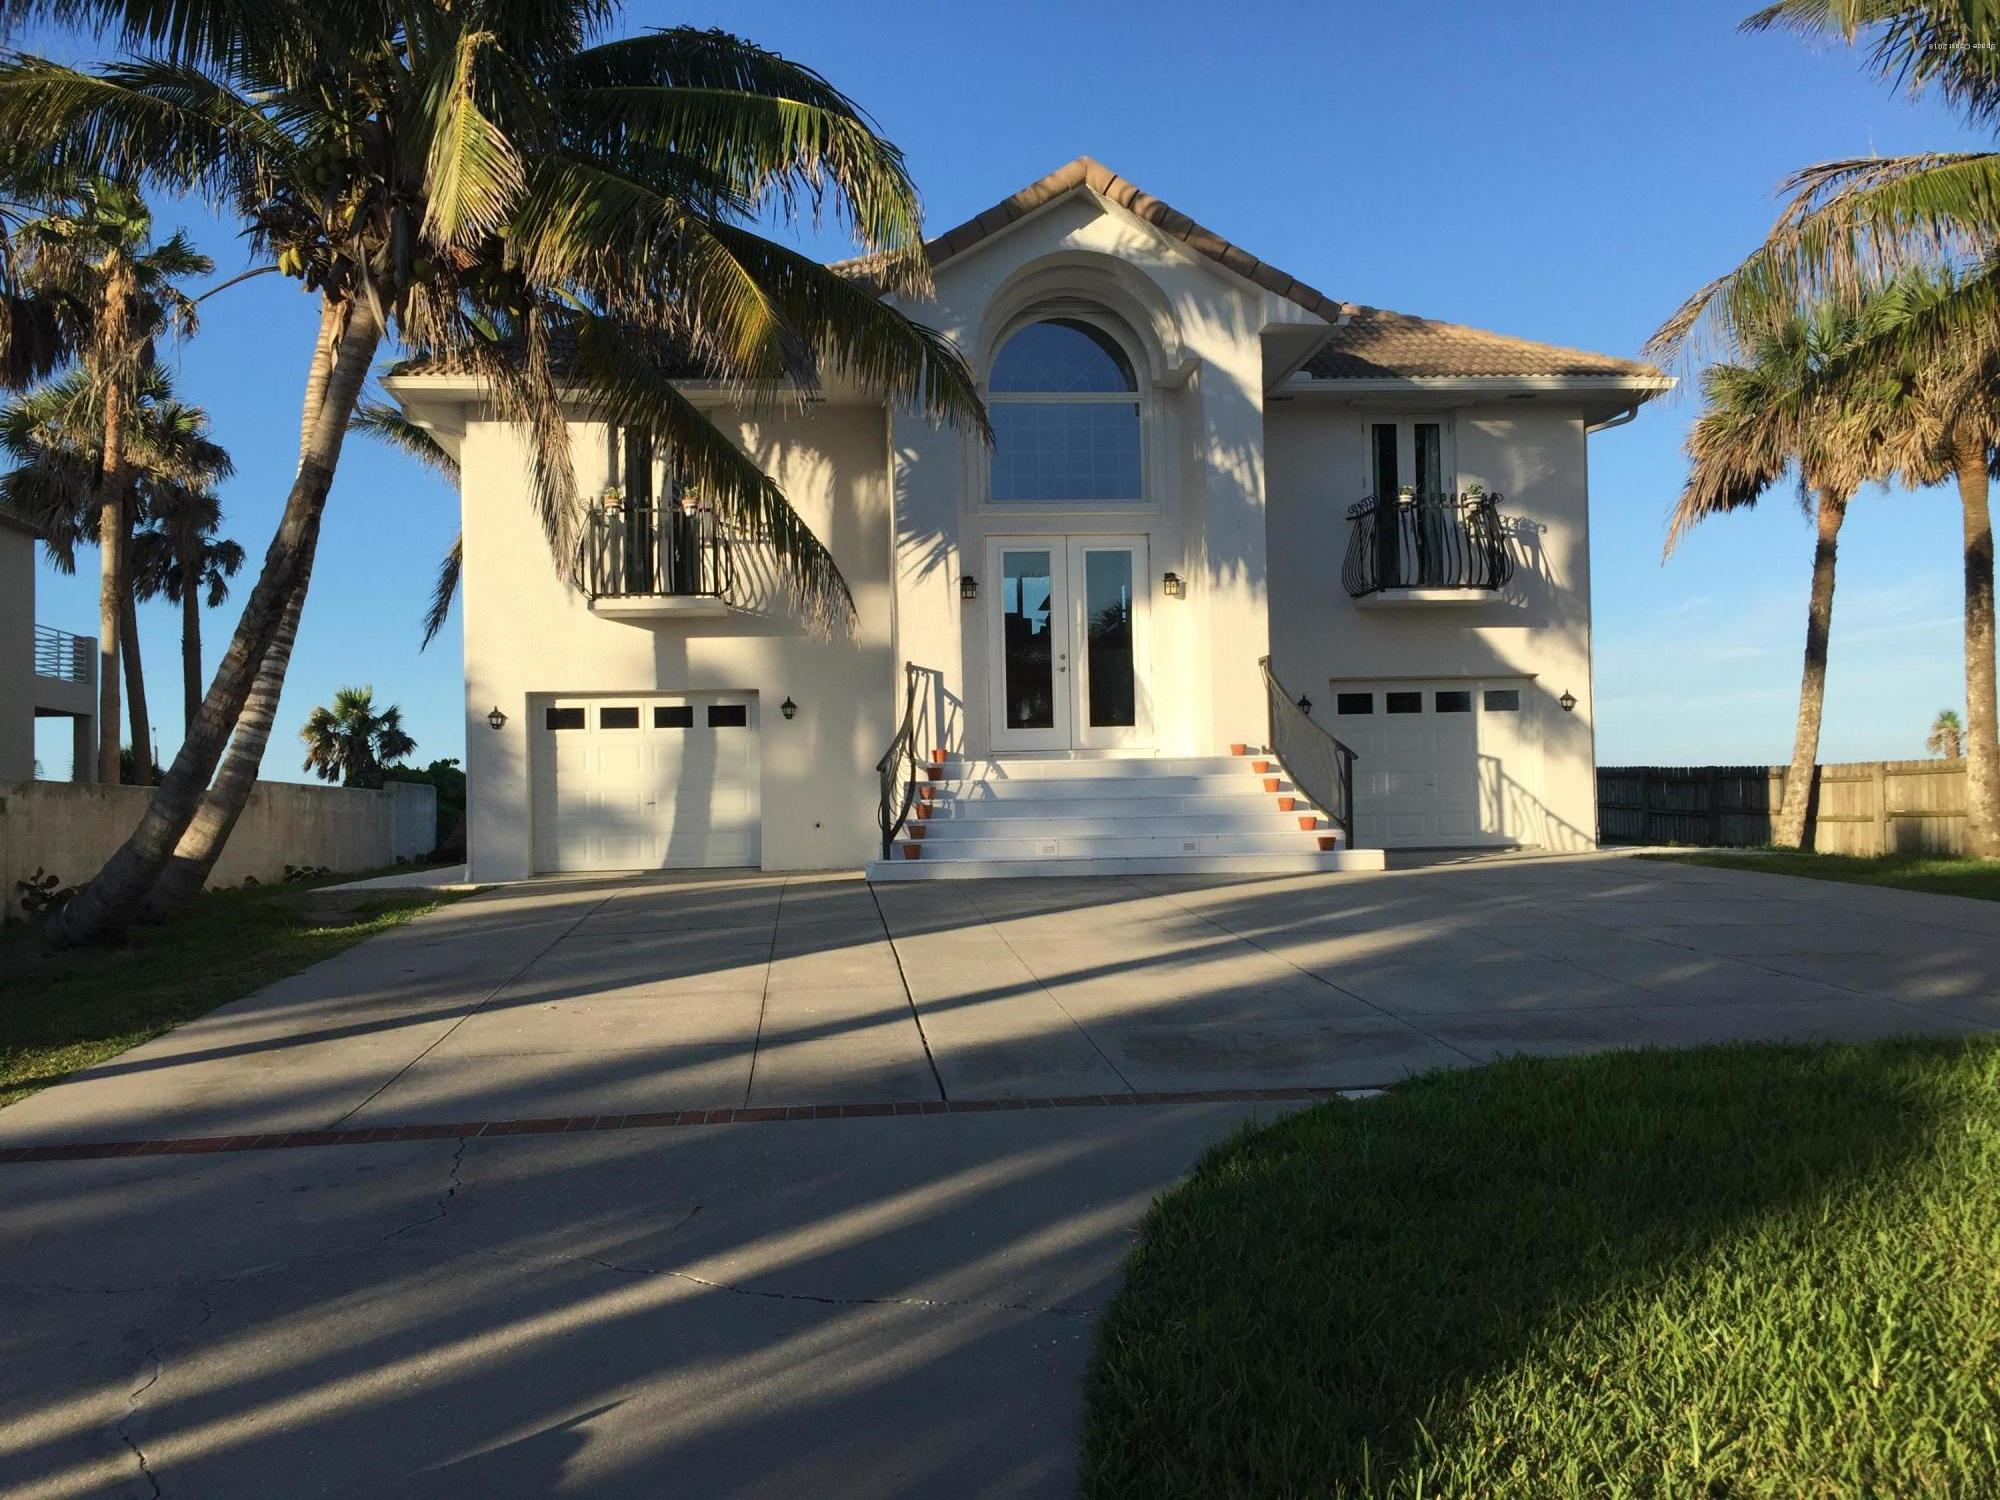 Single Family Home for Sale at 5995 S A1a 5995 S A1a Melbourne Beach, Florida 32951 United States